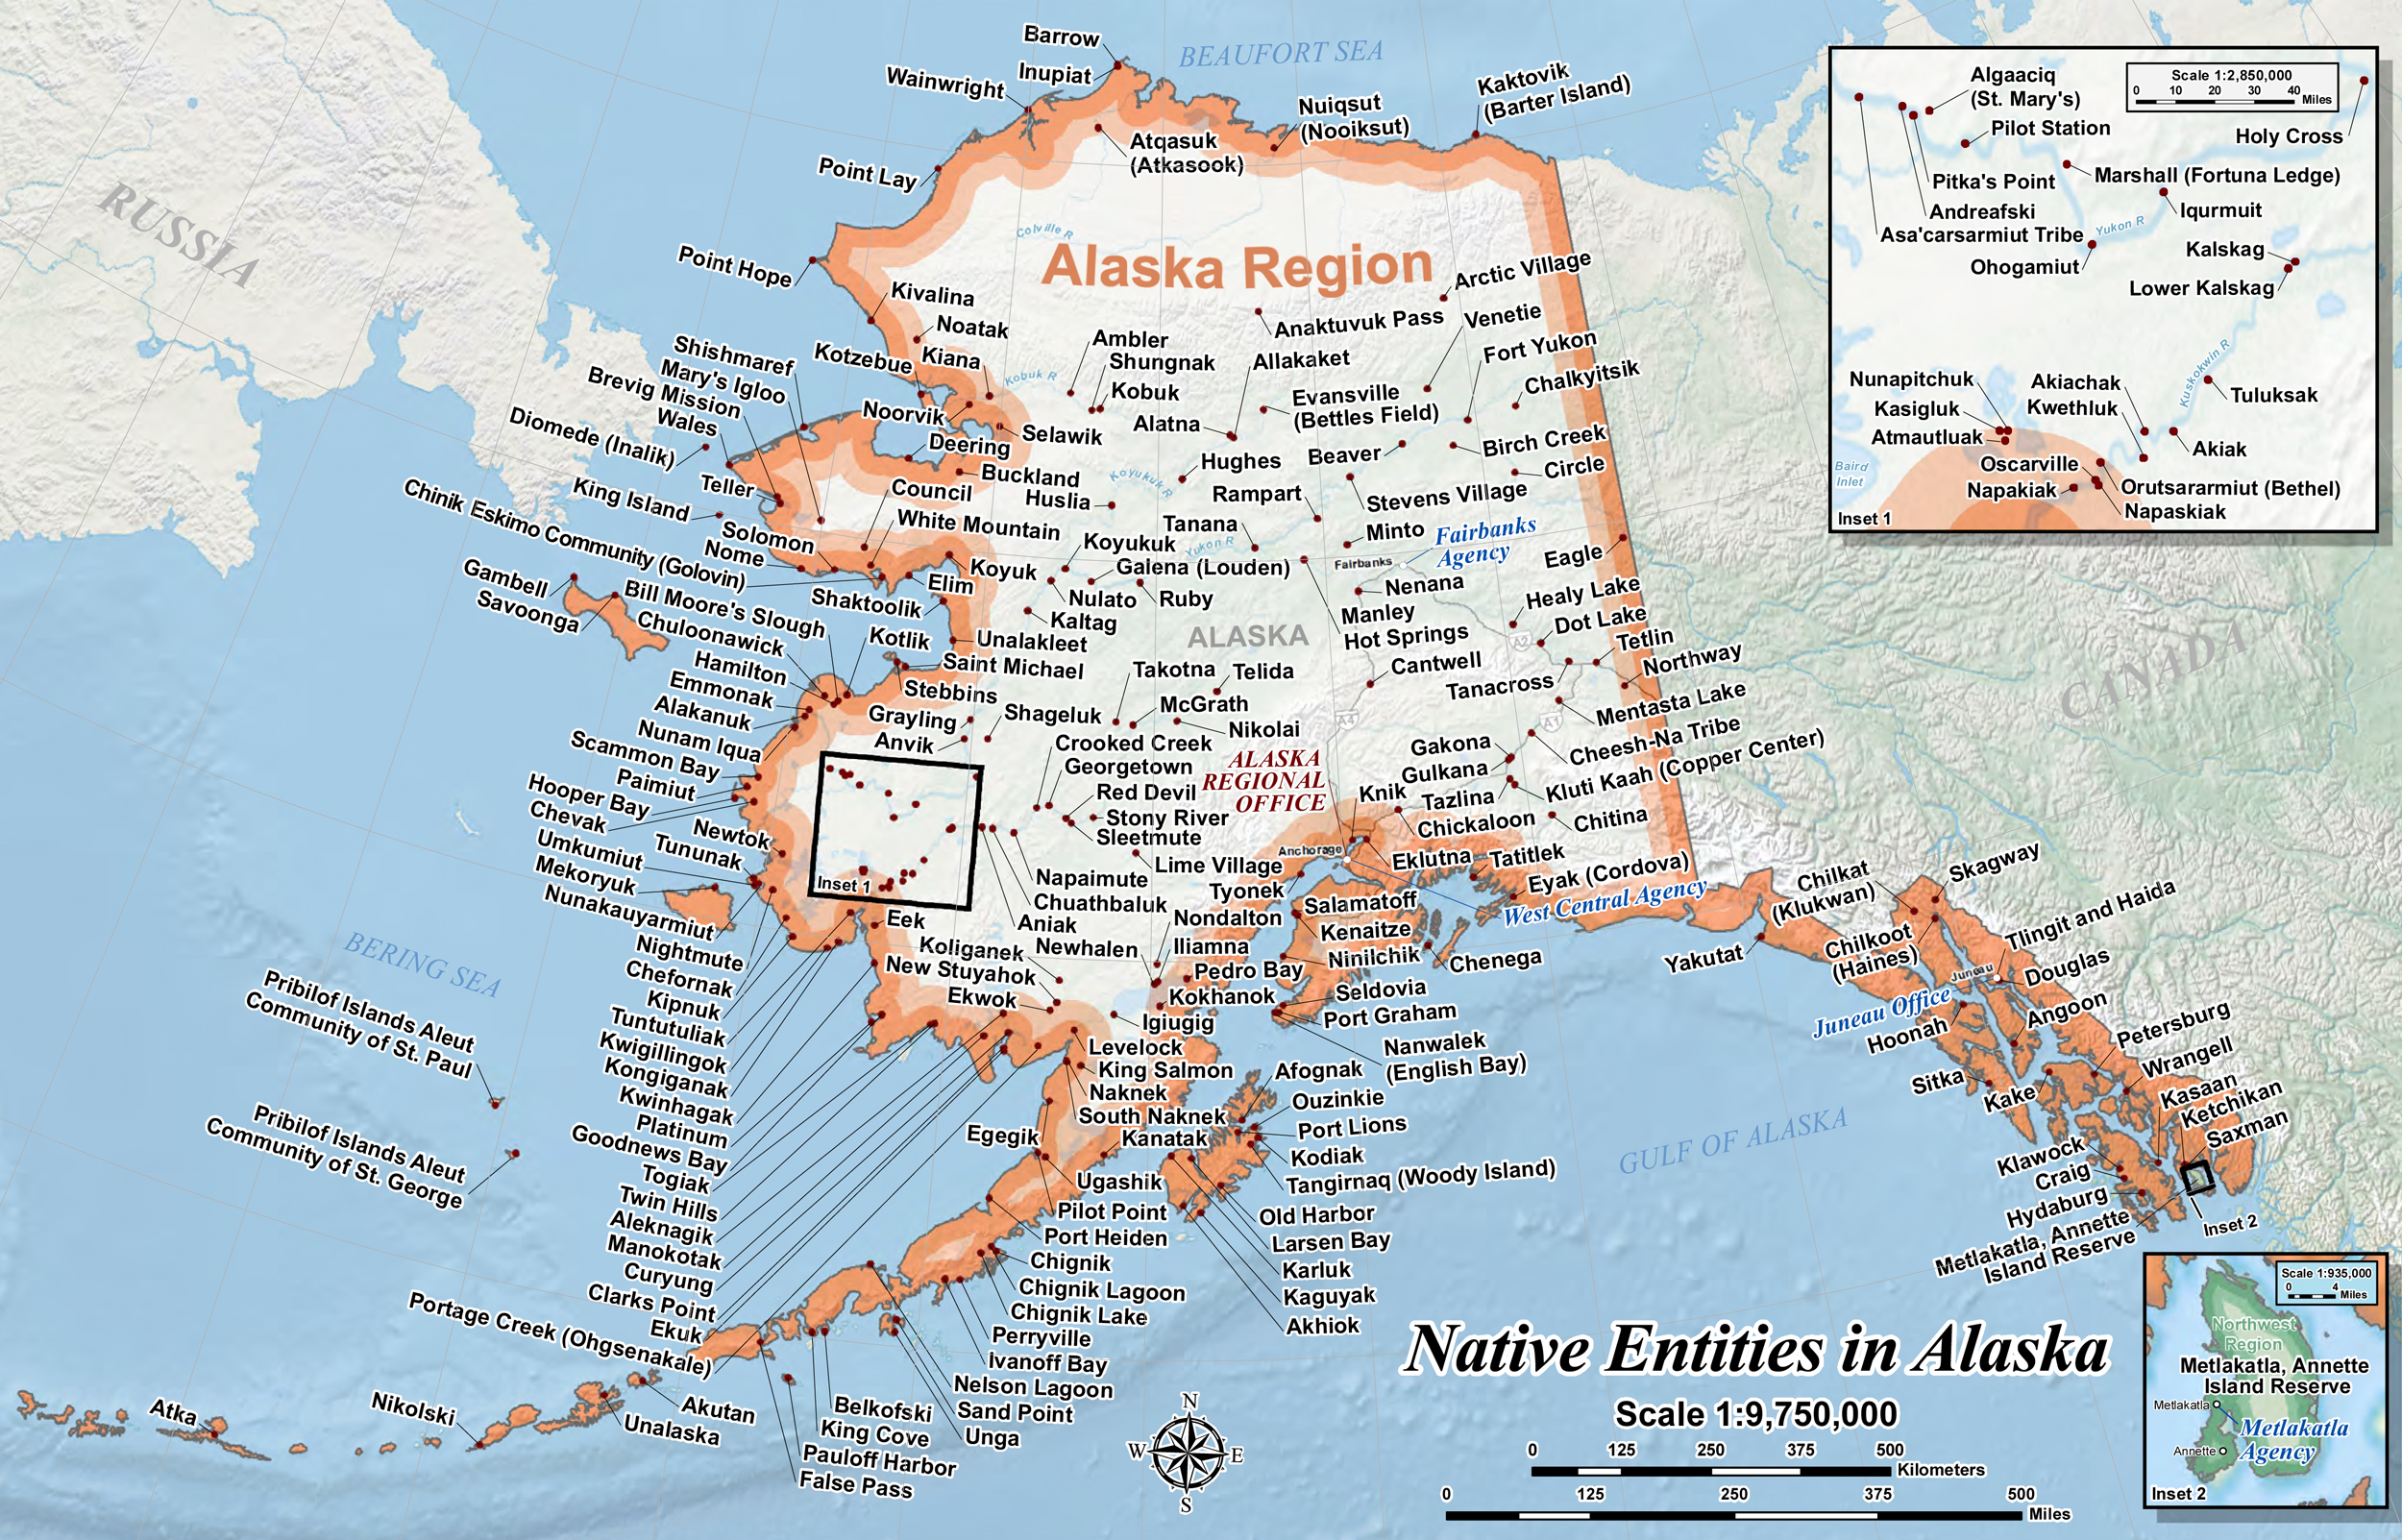 US: Map of the Native Entities in Alaska